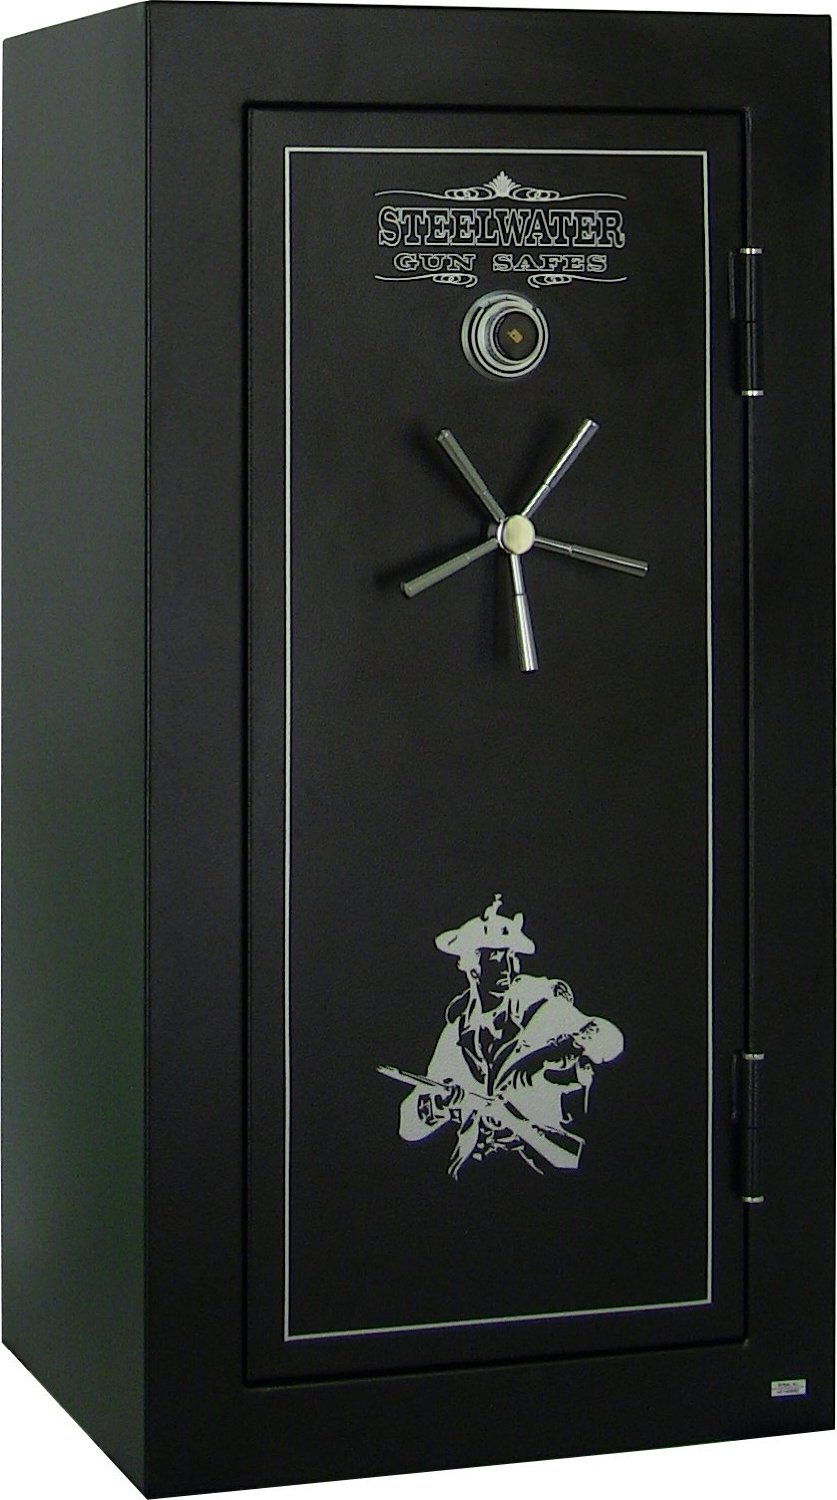 picture of Steelwater Heavy Duty 22 Long Gun Fire Protection for 60 Minutes AMLD593024-blk. our top gun safe in garage model